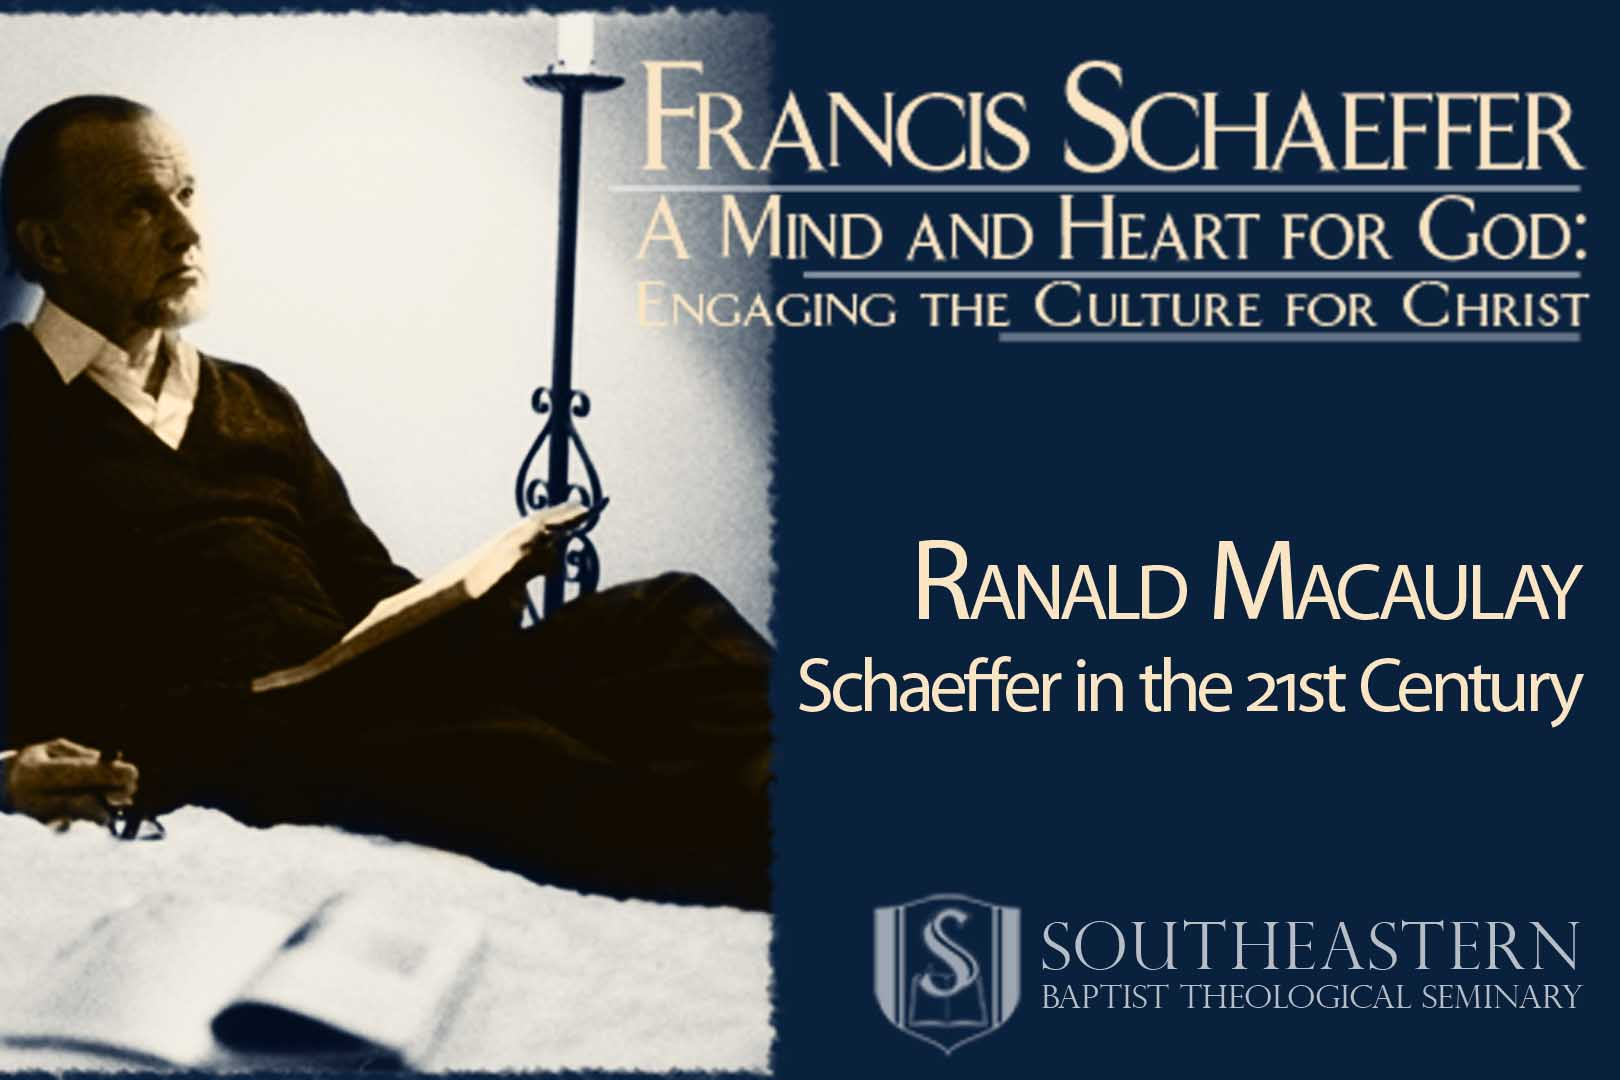 Ranald Macaulay – Schaeffer in the 21st Century